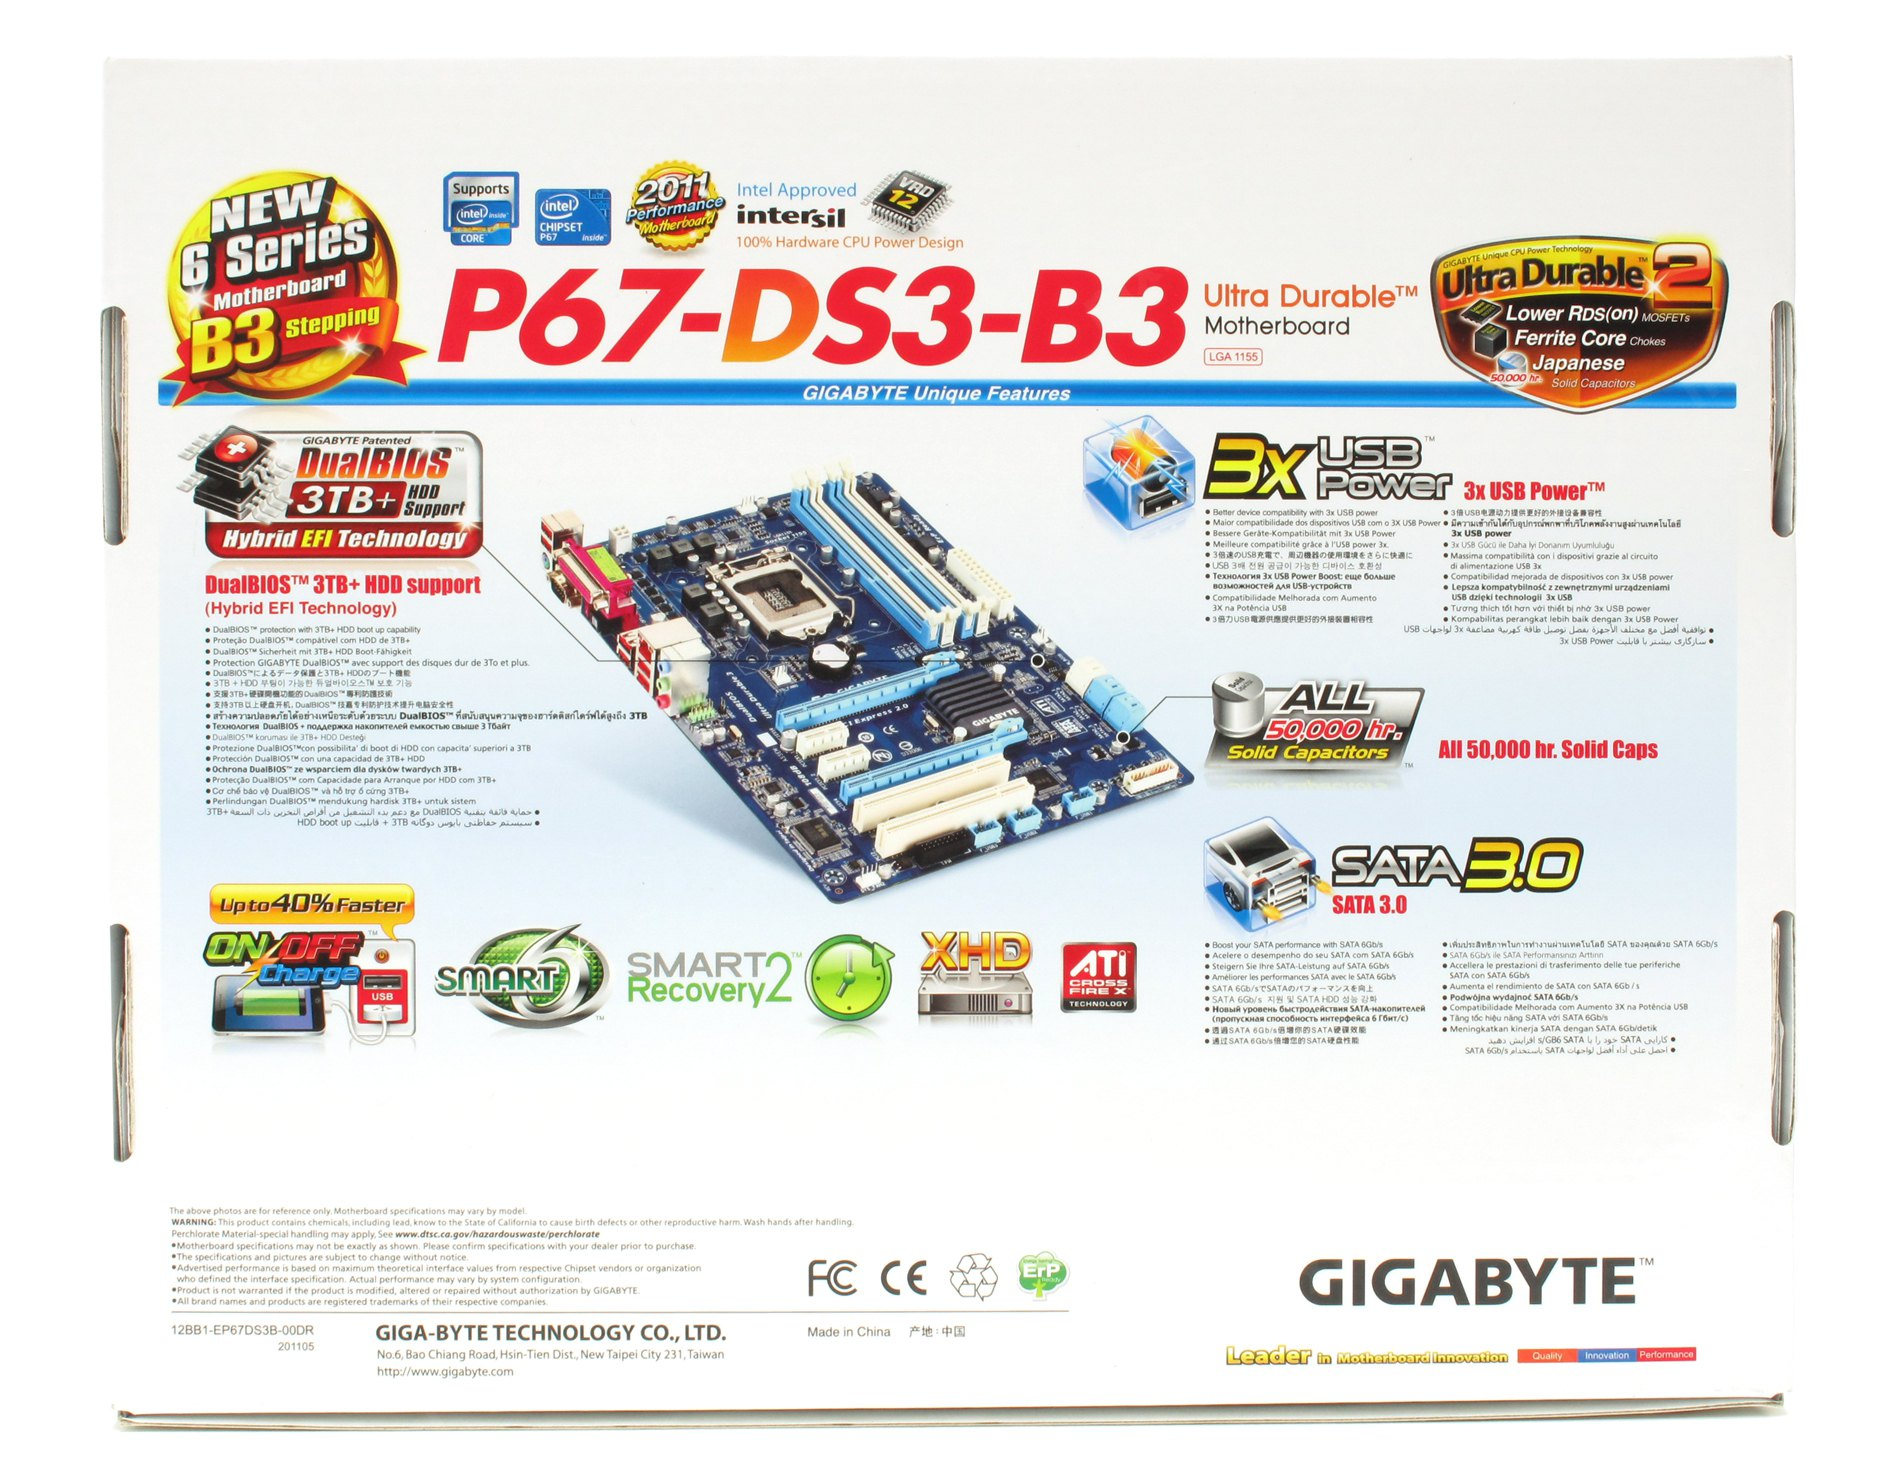 Gigabyte GA-P67-DS3-B3 3TB+ Windows 7